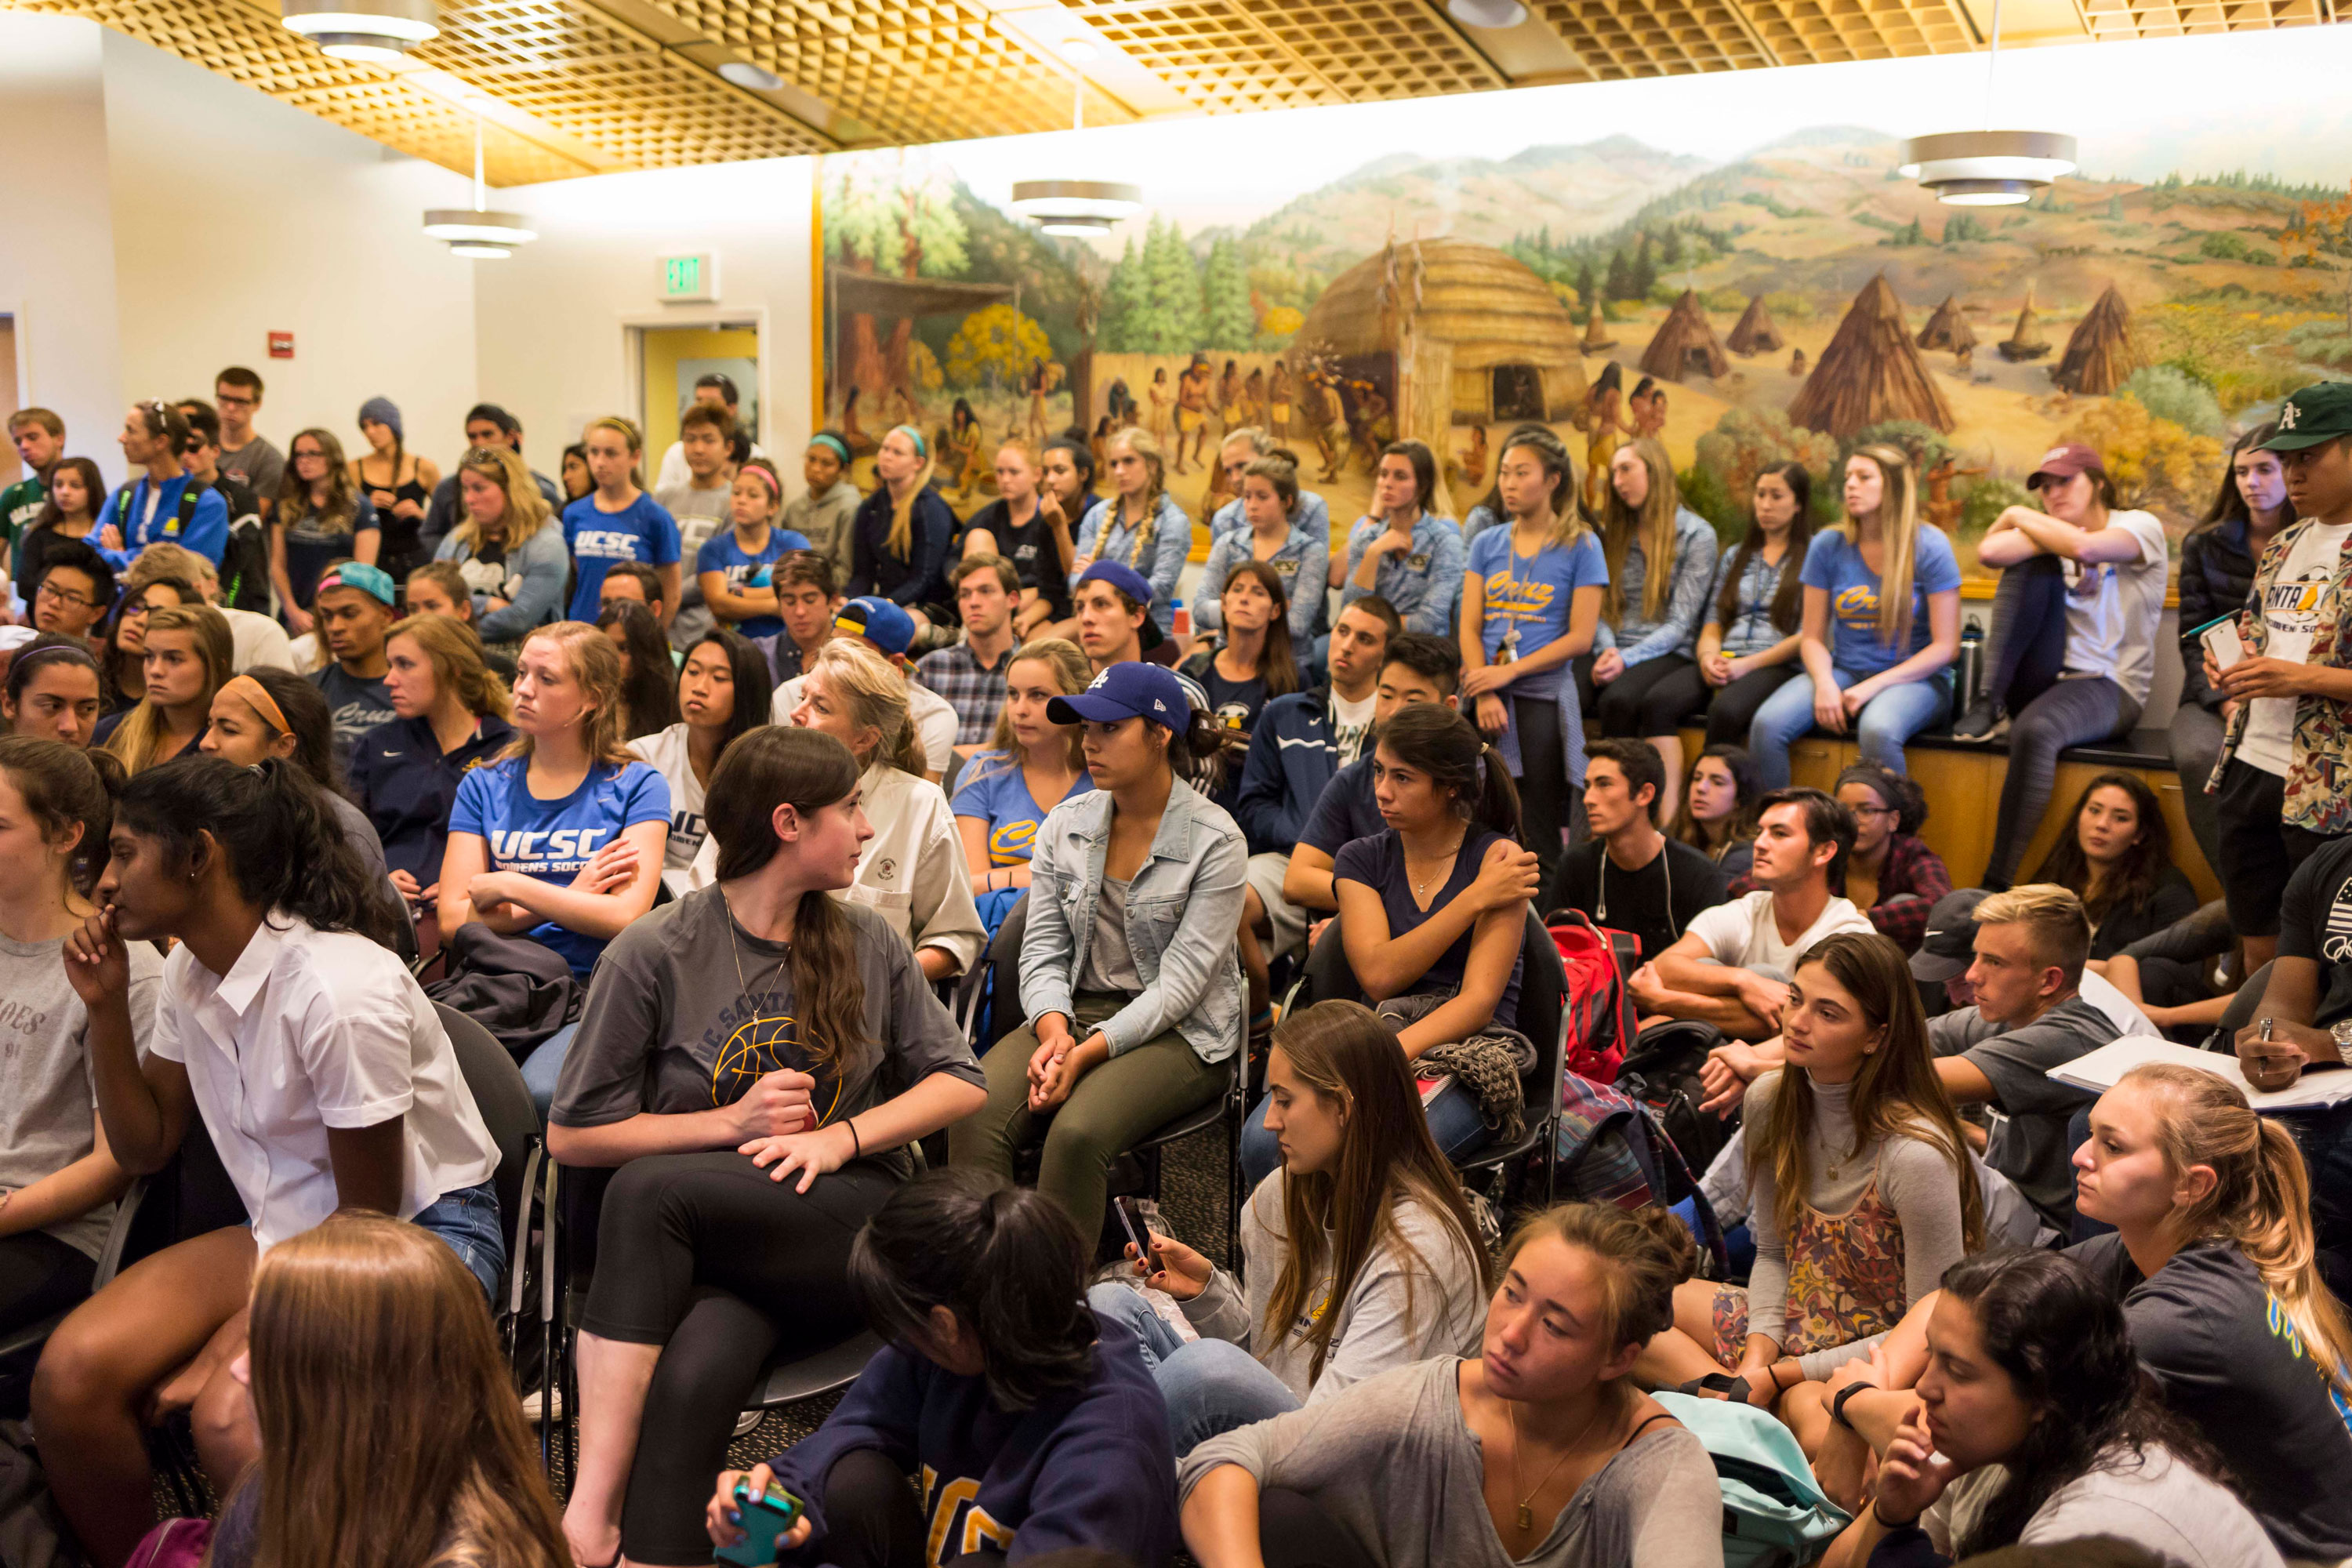 About 100 students, mostly NCAA athletes filled the Cervantes and Velasquez Conference Room for a town hall meeting hosted by the Faculty Senate Special Committee on Athletics on Oct. 19. Photo by Jasper Lyons